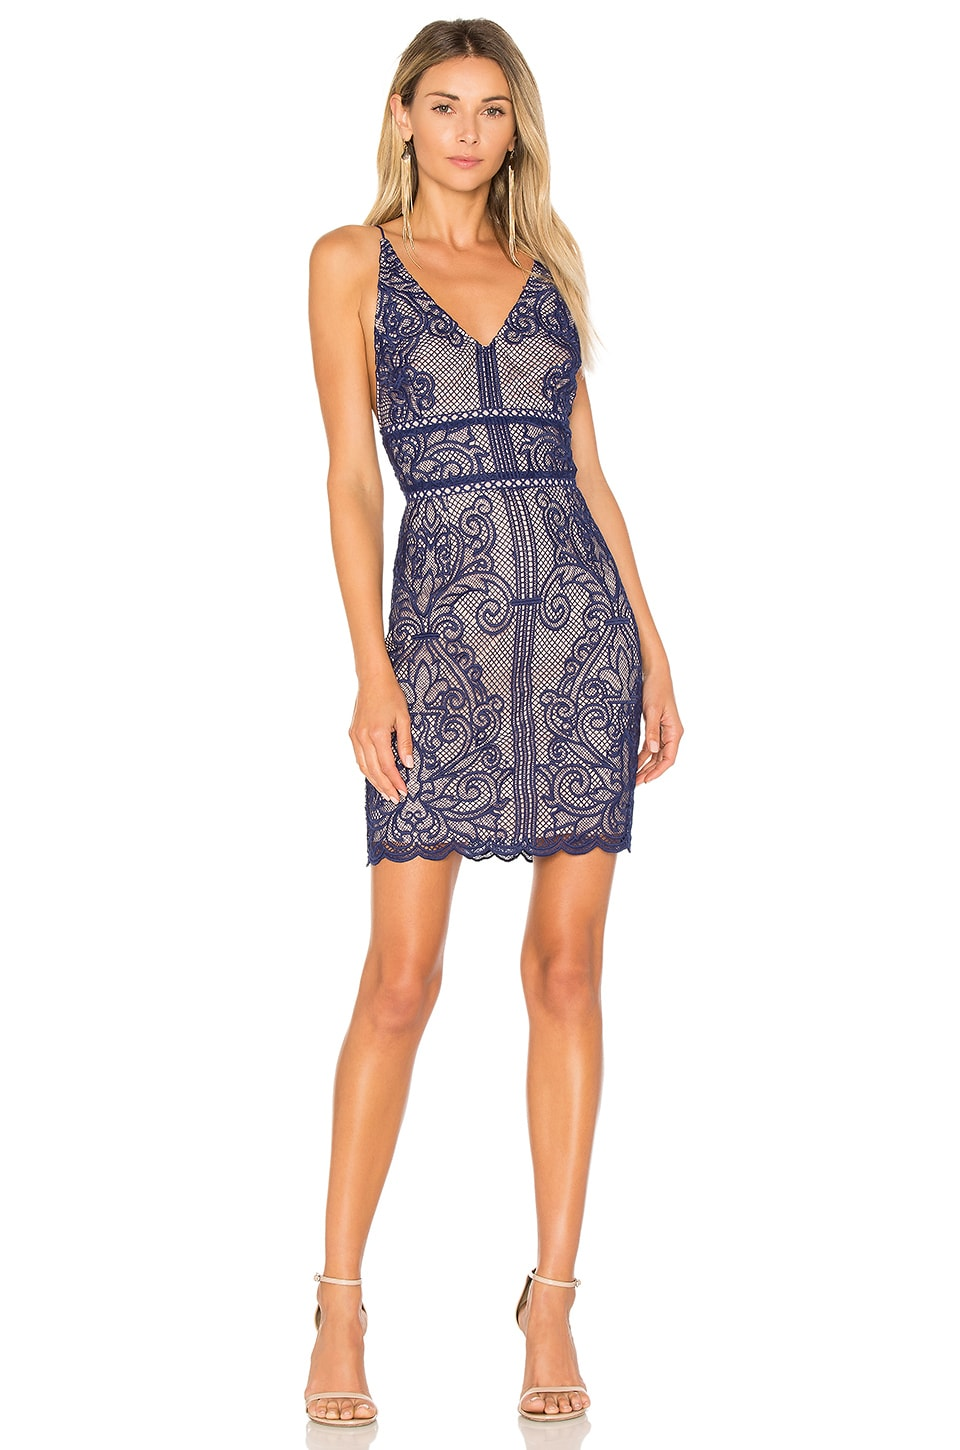 STYLESTALKER Stella Dress in Royal Blue